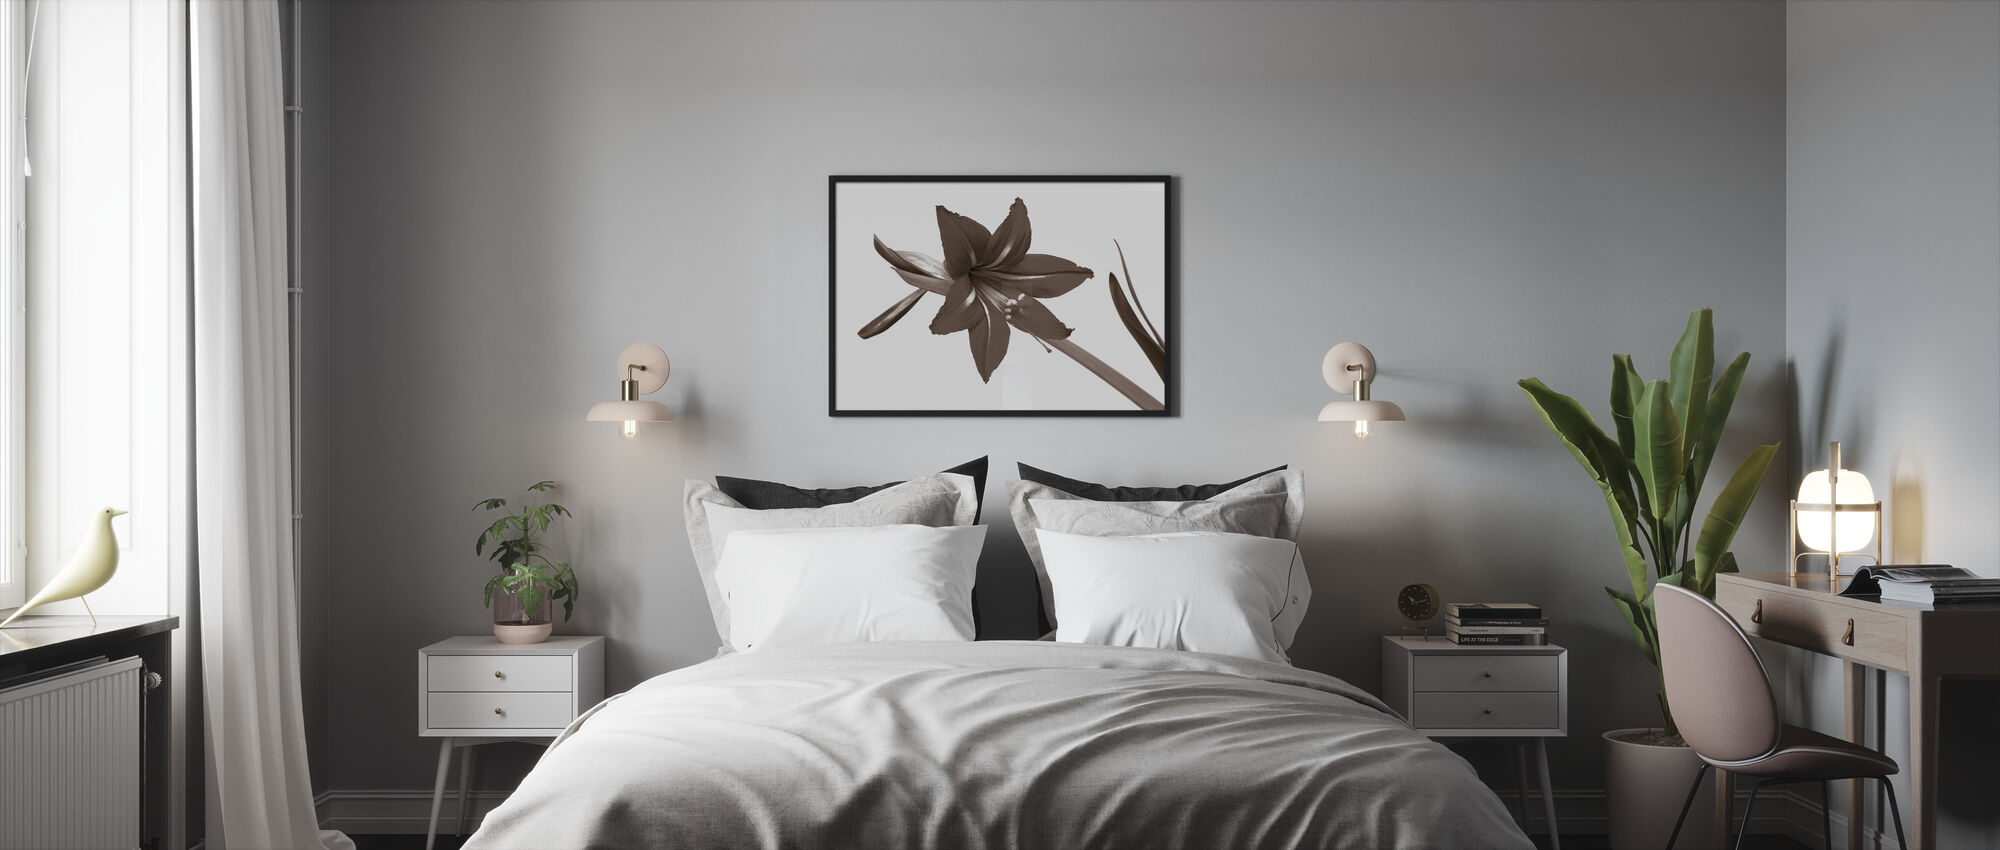 Red Lily - Sepia - Framed print - Bedroom